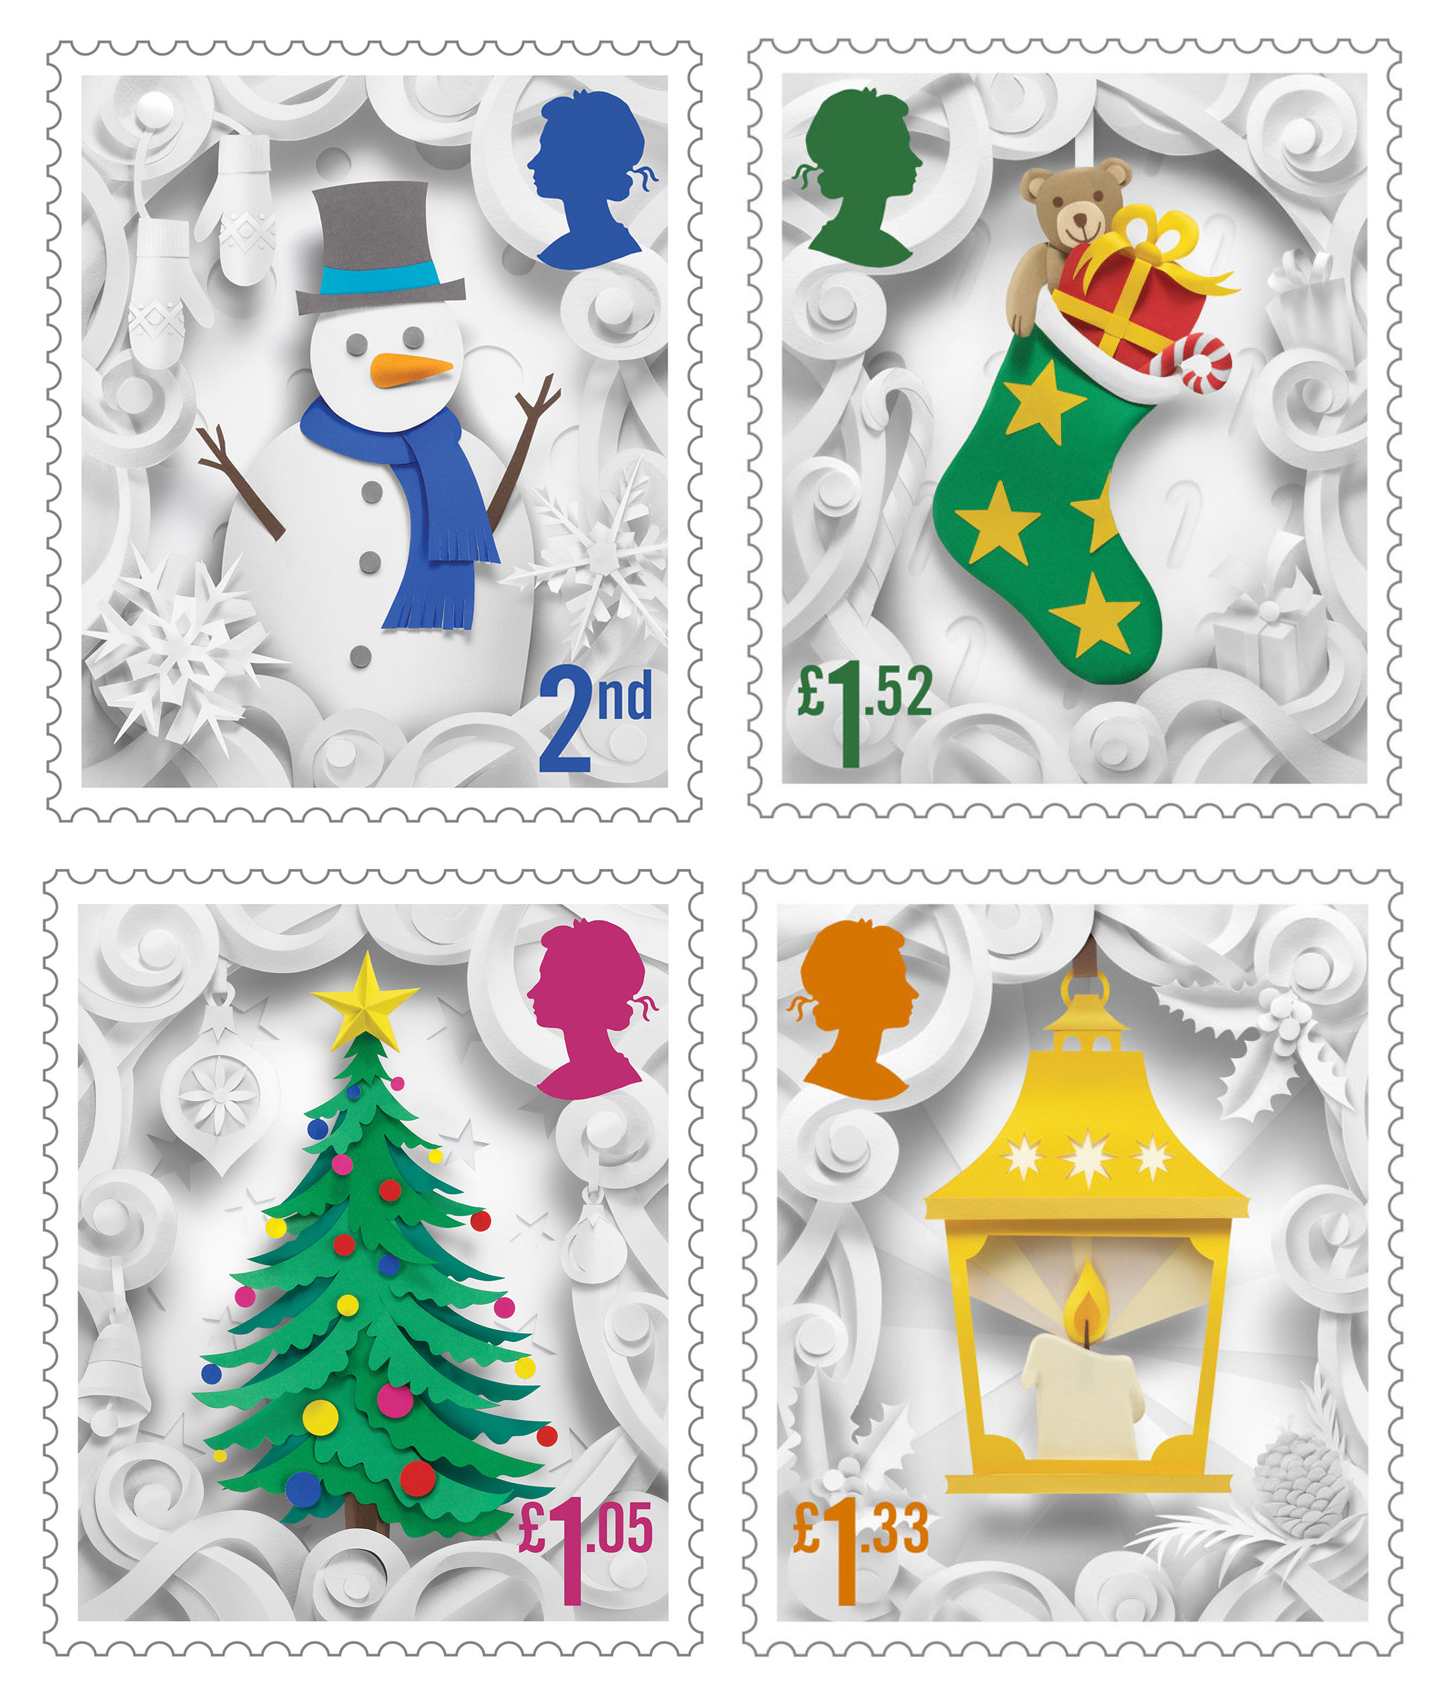 Delightful Christmas Stamp Collection Handcrafted in Paper by Helen Musselwhite